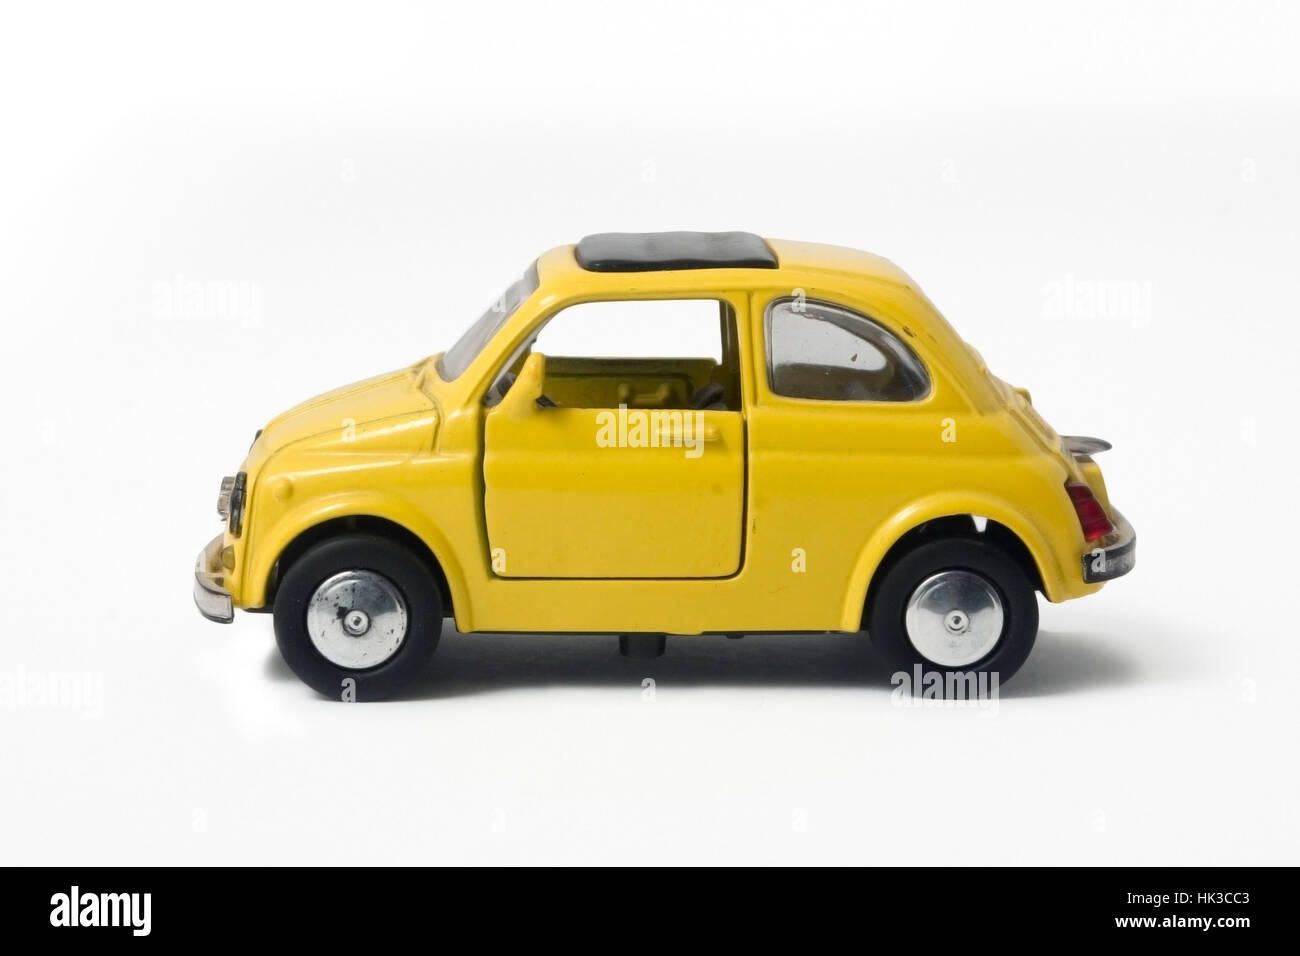 a little model of an old italian car Stock Photo: 132226643 - Alamy